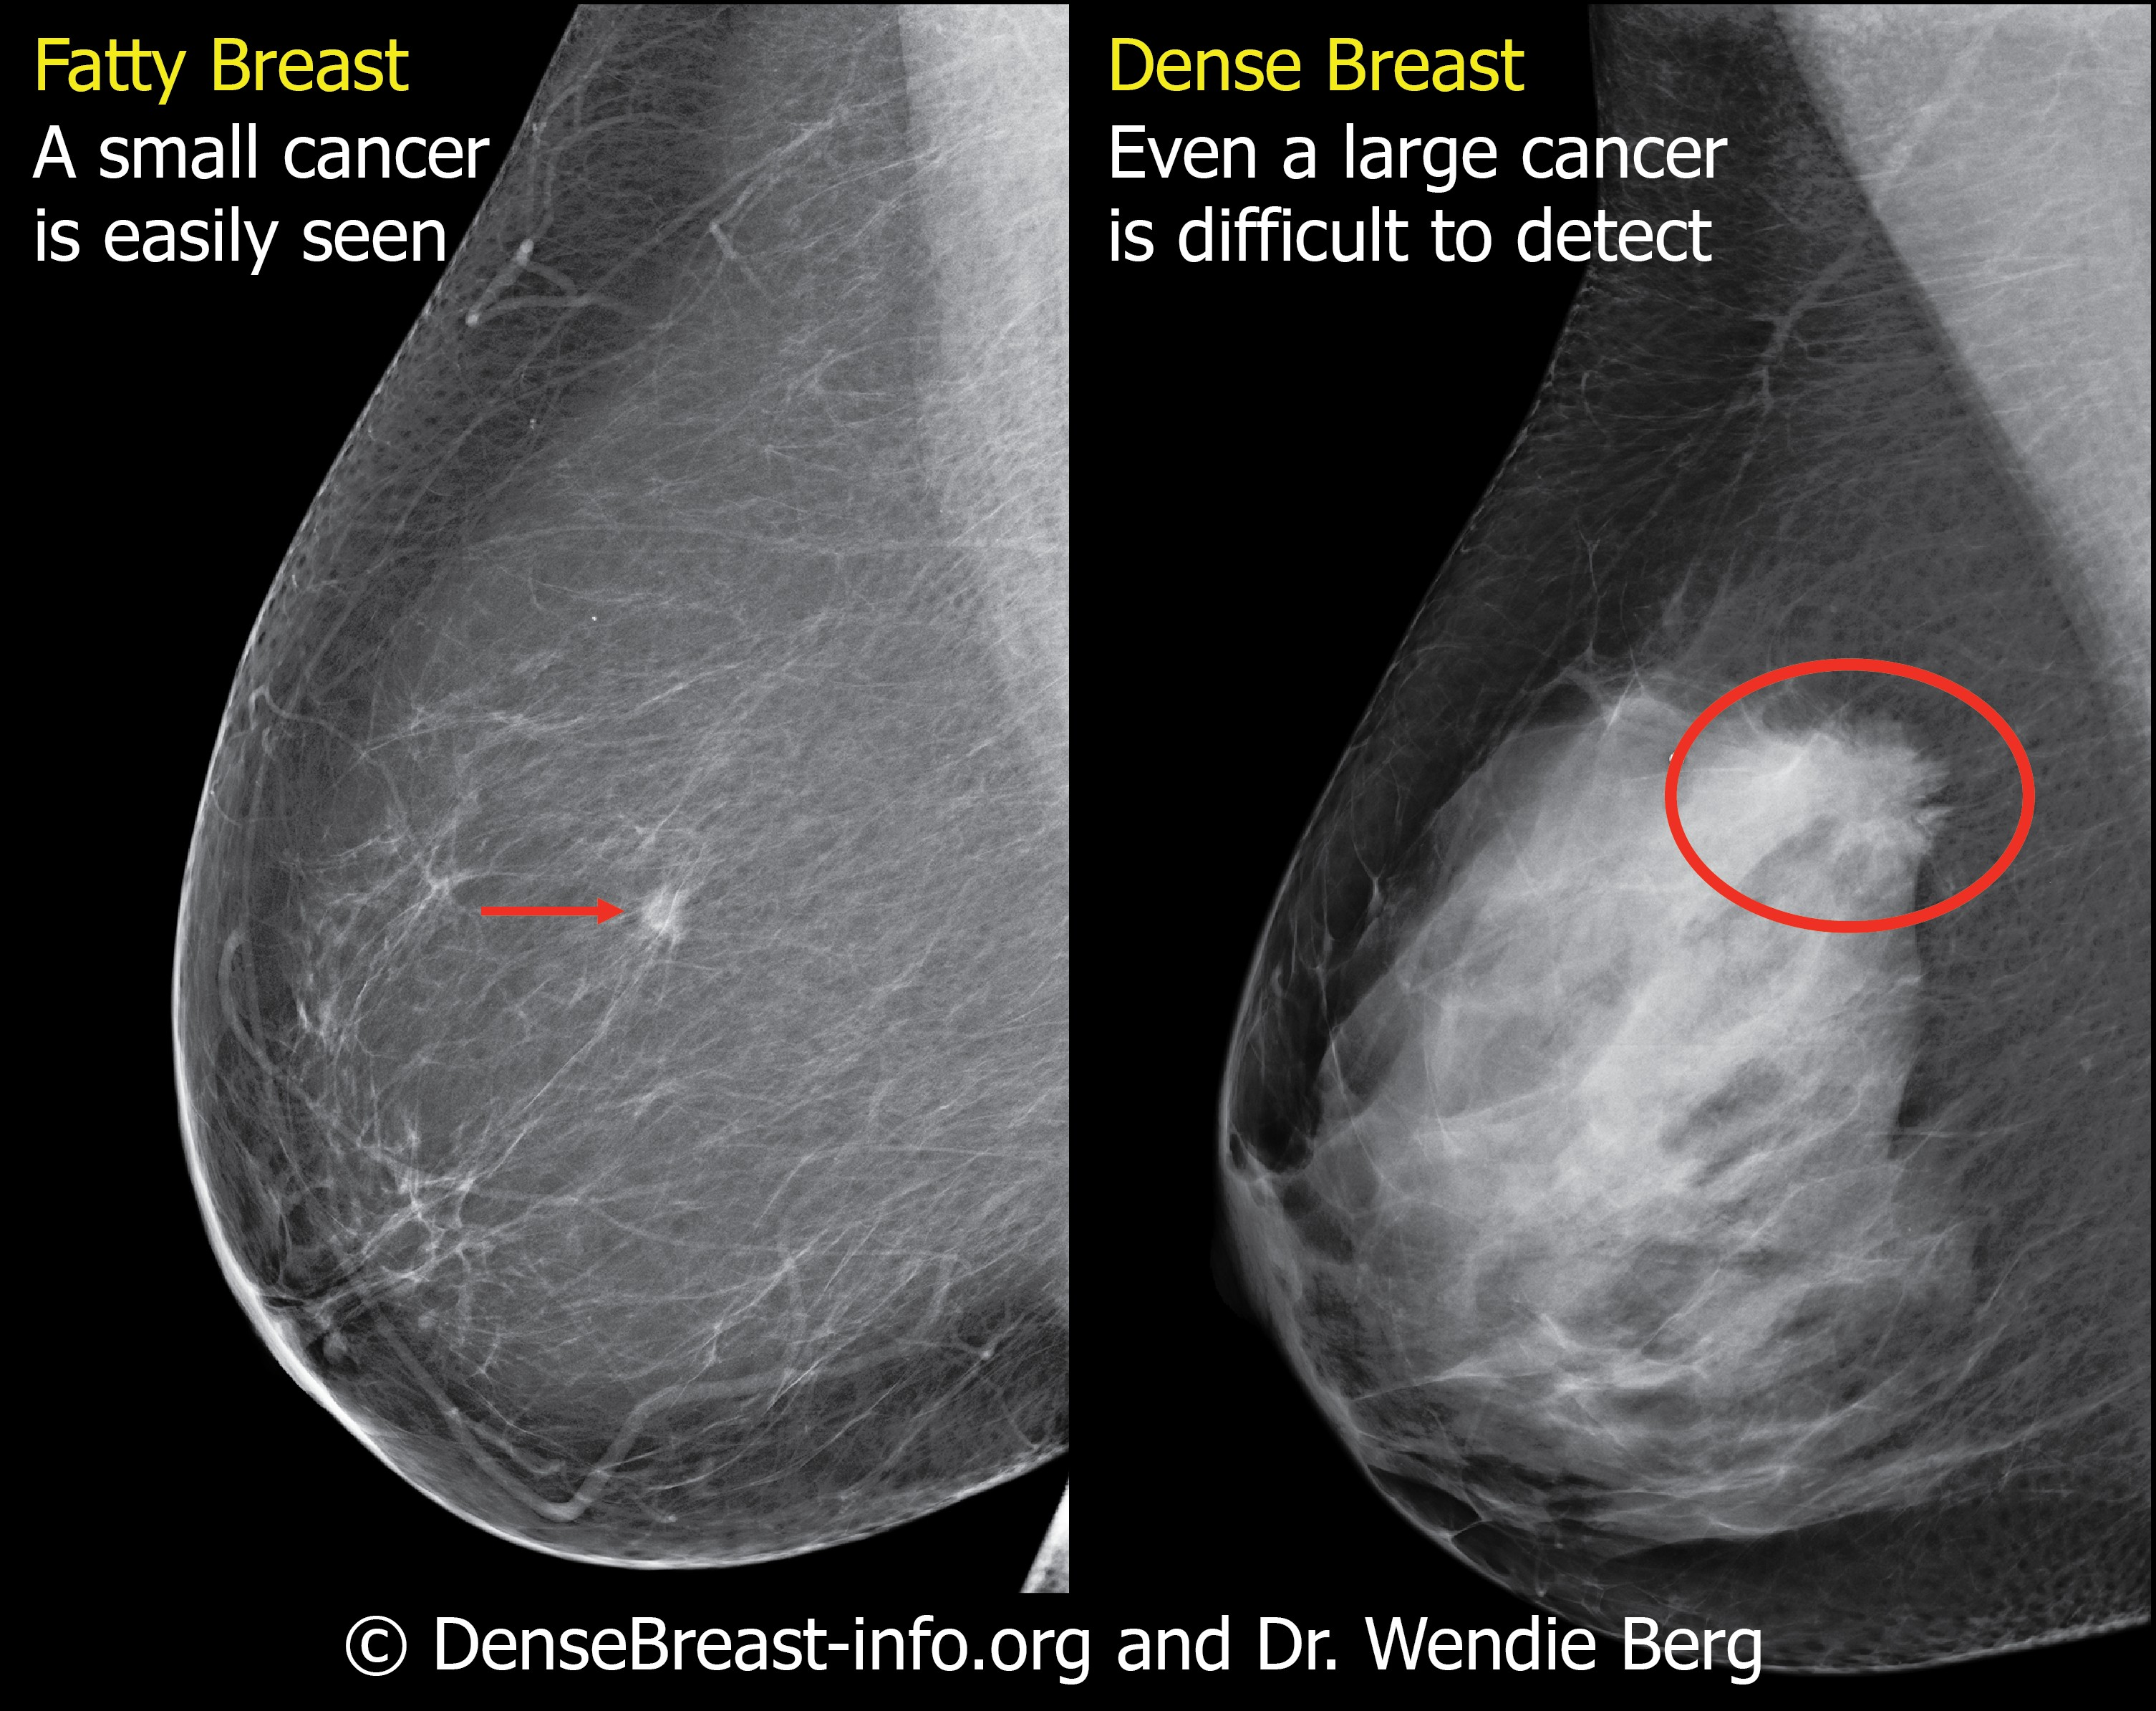 Why breast density matters on a mammogram